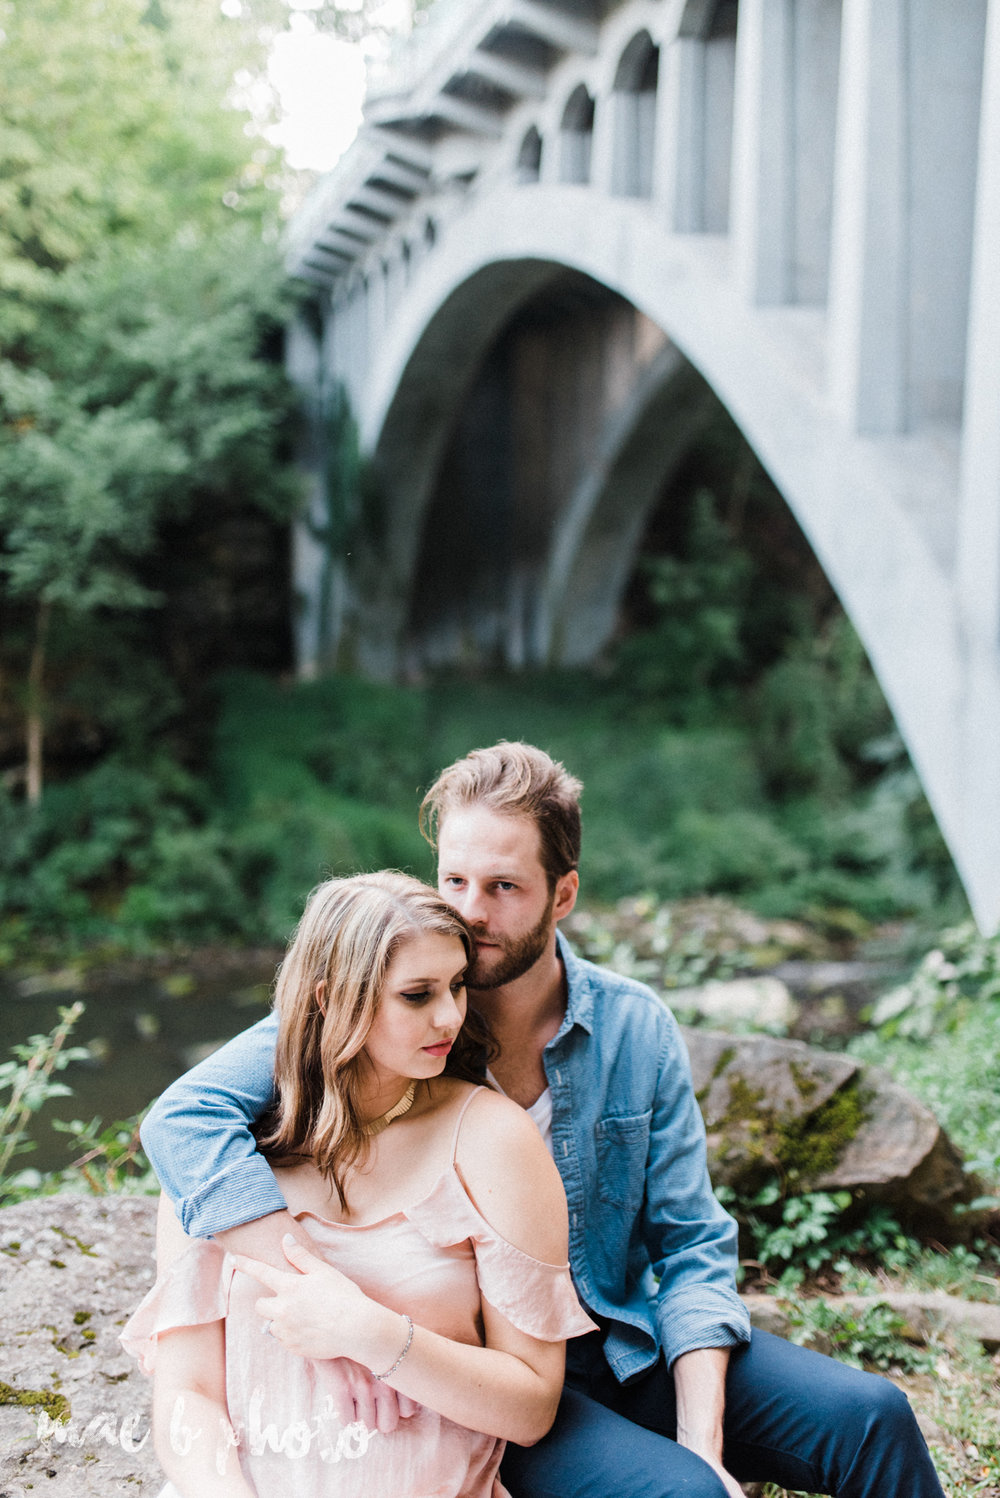 lauren and steve's summer engagement session at the rose gardens and lanterman's mill in mill creek park in youngstown ohio photographed by youngstown wedding photographer mae b photo-39.jpg